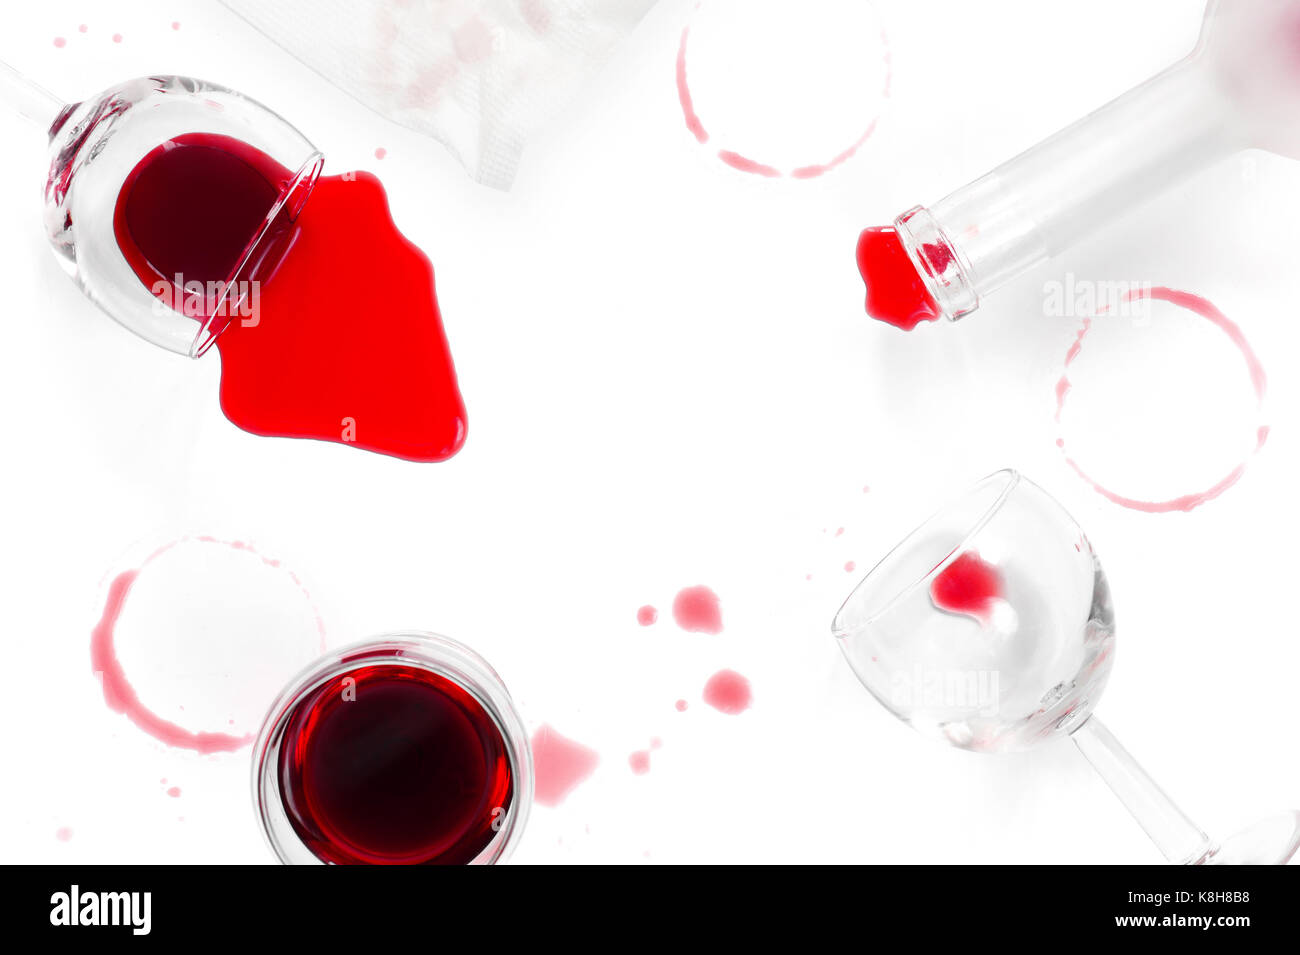 spilled red wine glasses and a bottle on the white table stock